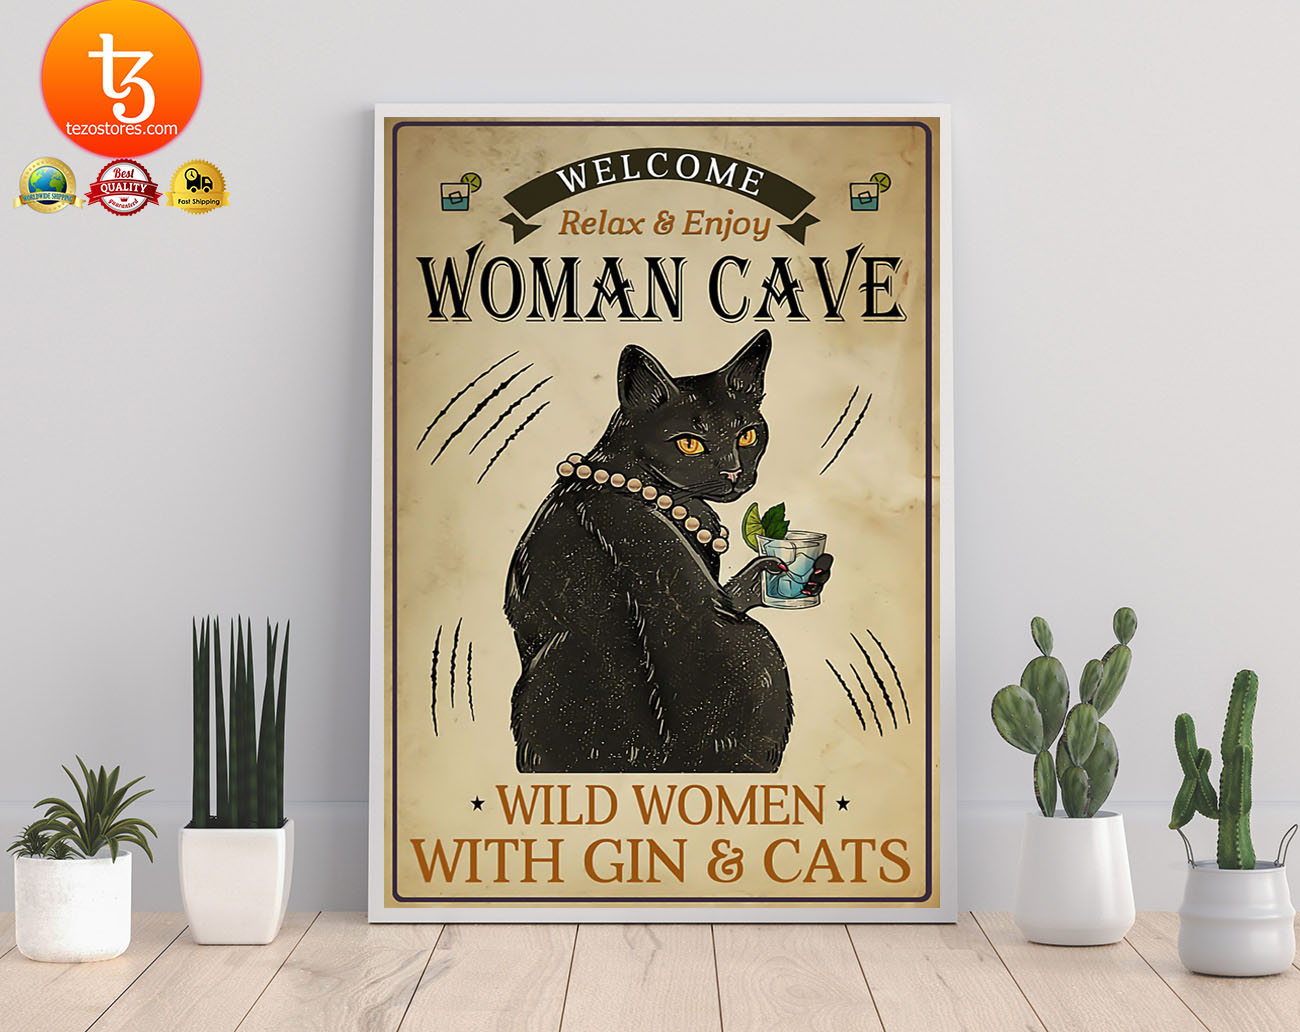 Welcome relax enjoy woman cave will women with gin and cats poster 21